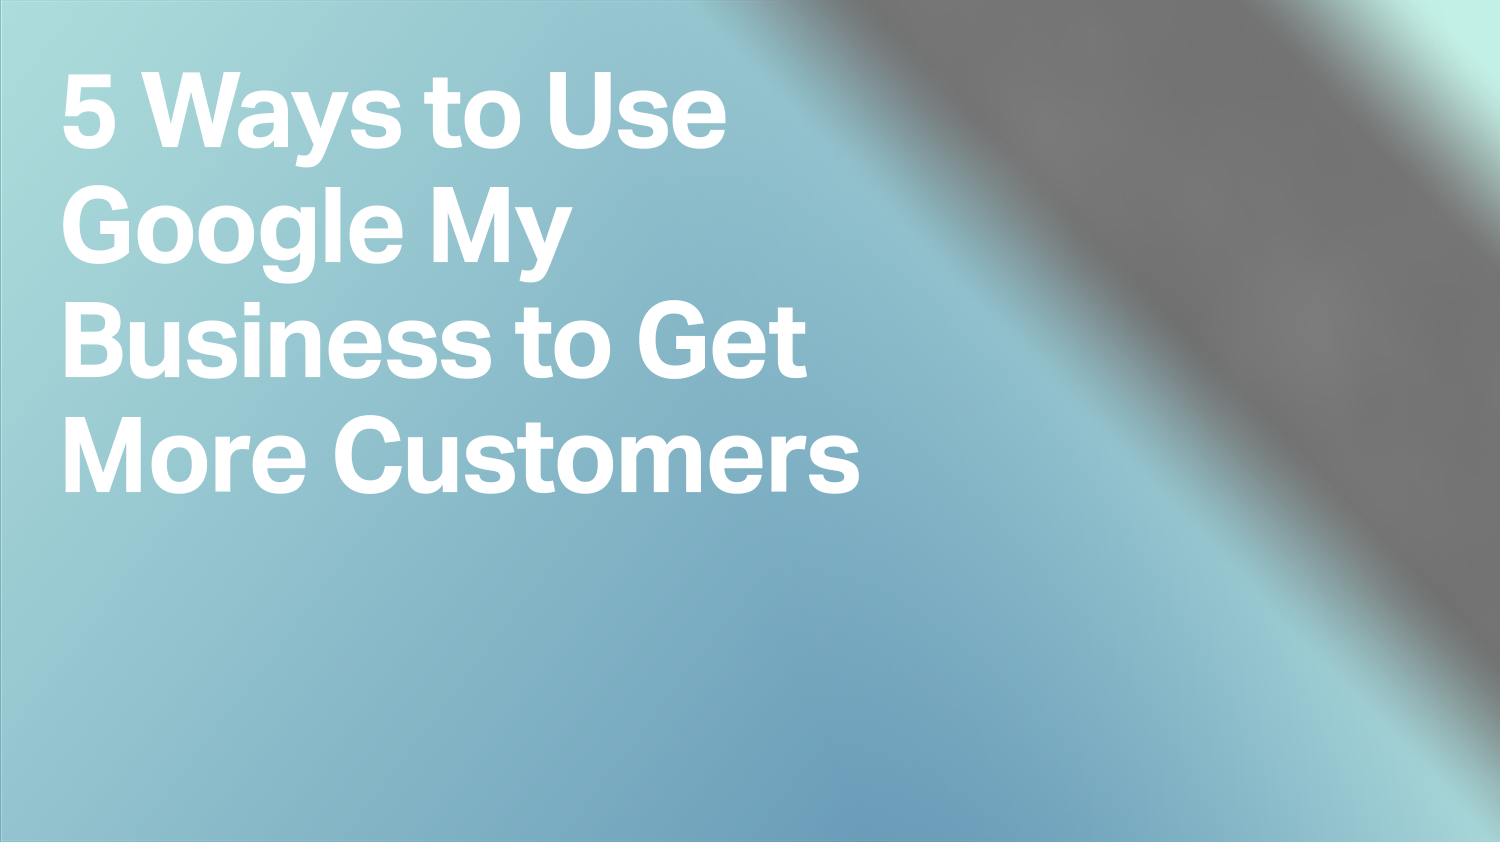 5 Ways to Use Google My Business to Get More Customers